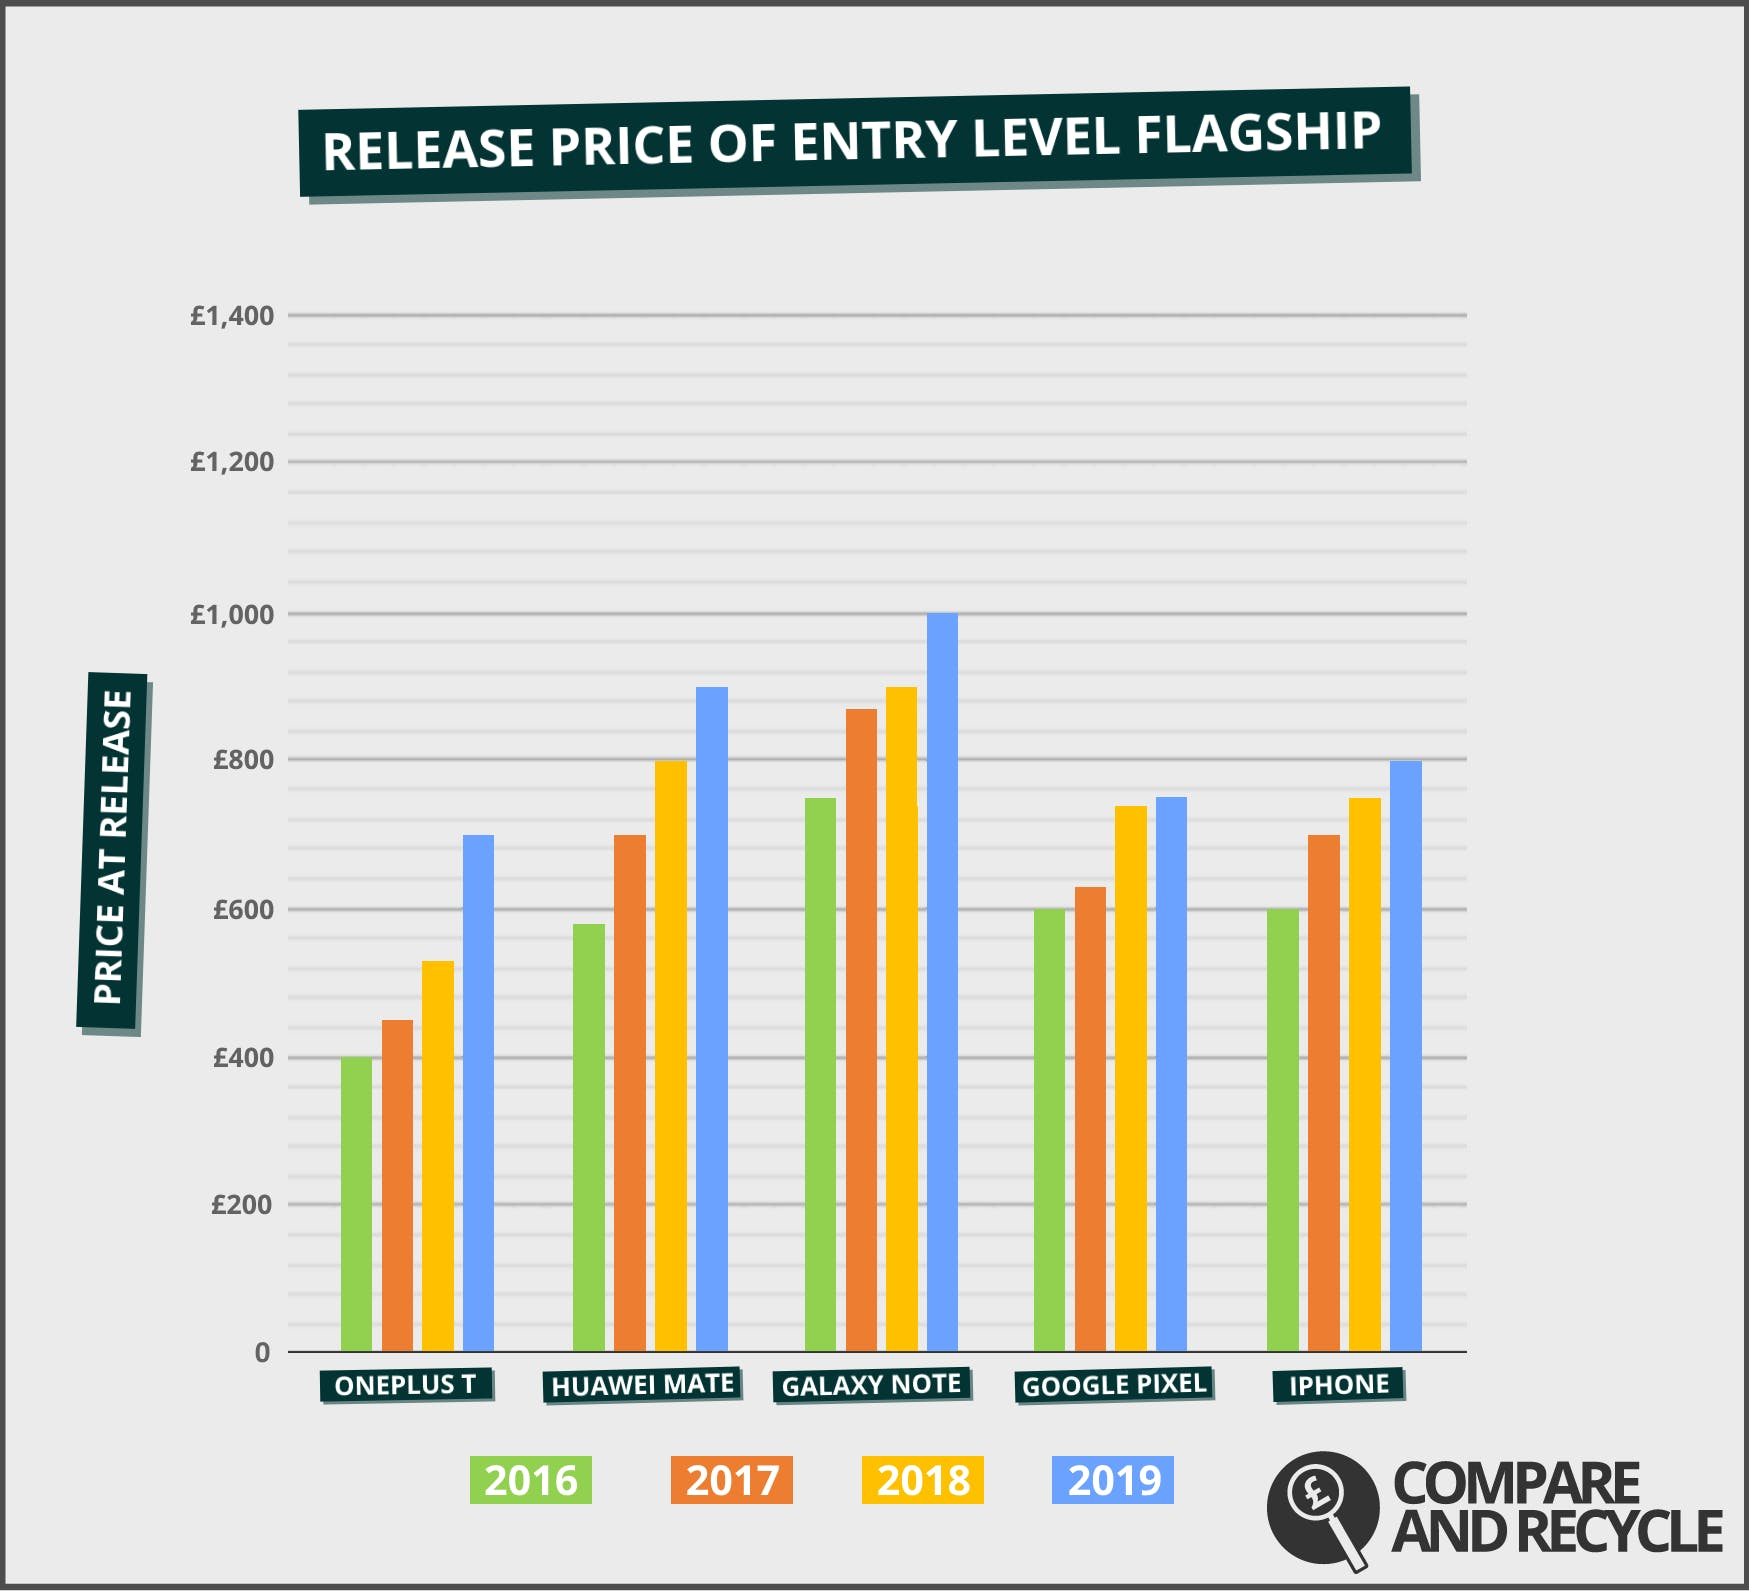 """This graph illustrates 2019 prices as estimates based on industry speculation and data from the past three years. """"Entry level flagship"""" means the cheapest model released in the second half of the year annually, by brand"""